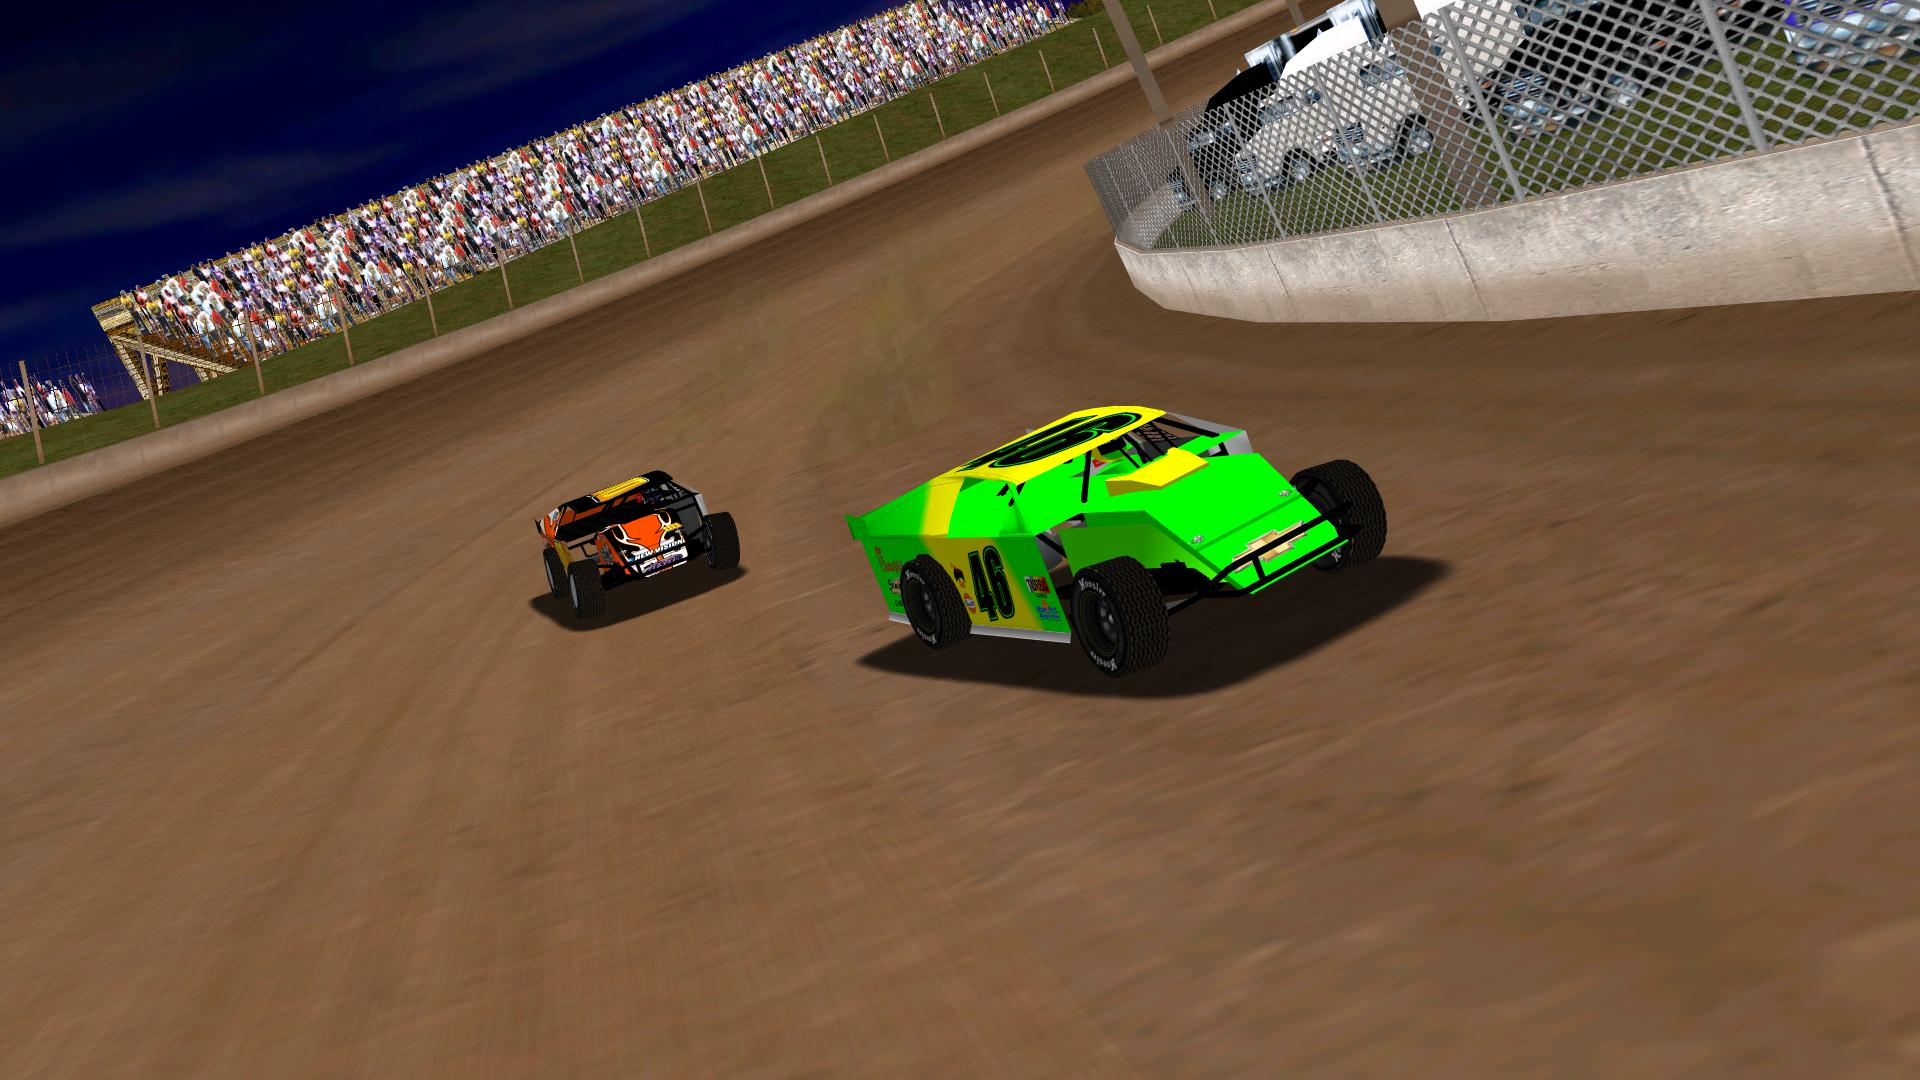 puttzracer leading KartRacer63 while sliding through turns three and four. (NASCAR Heat Modified Association)